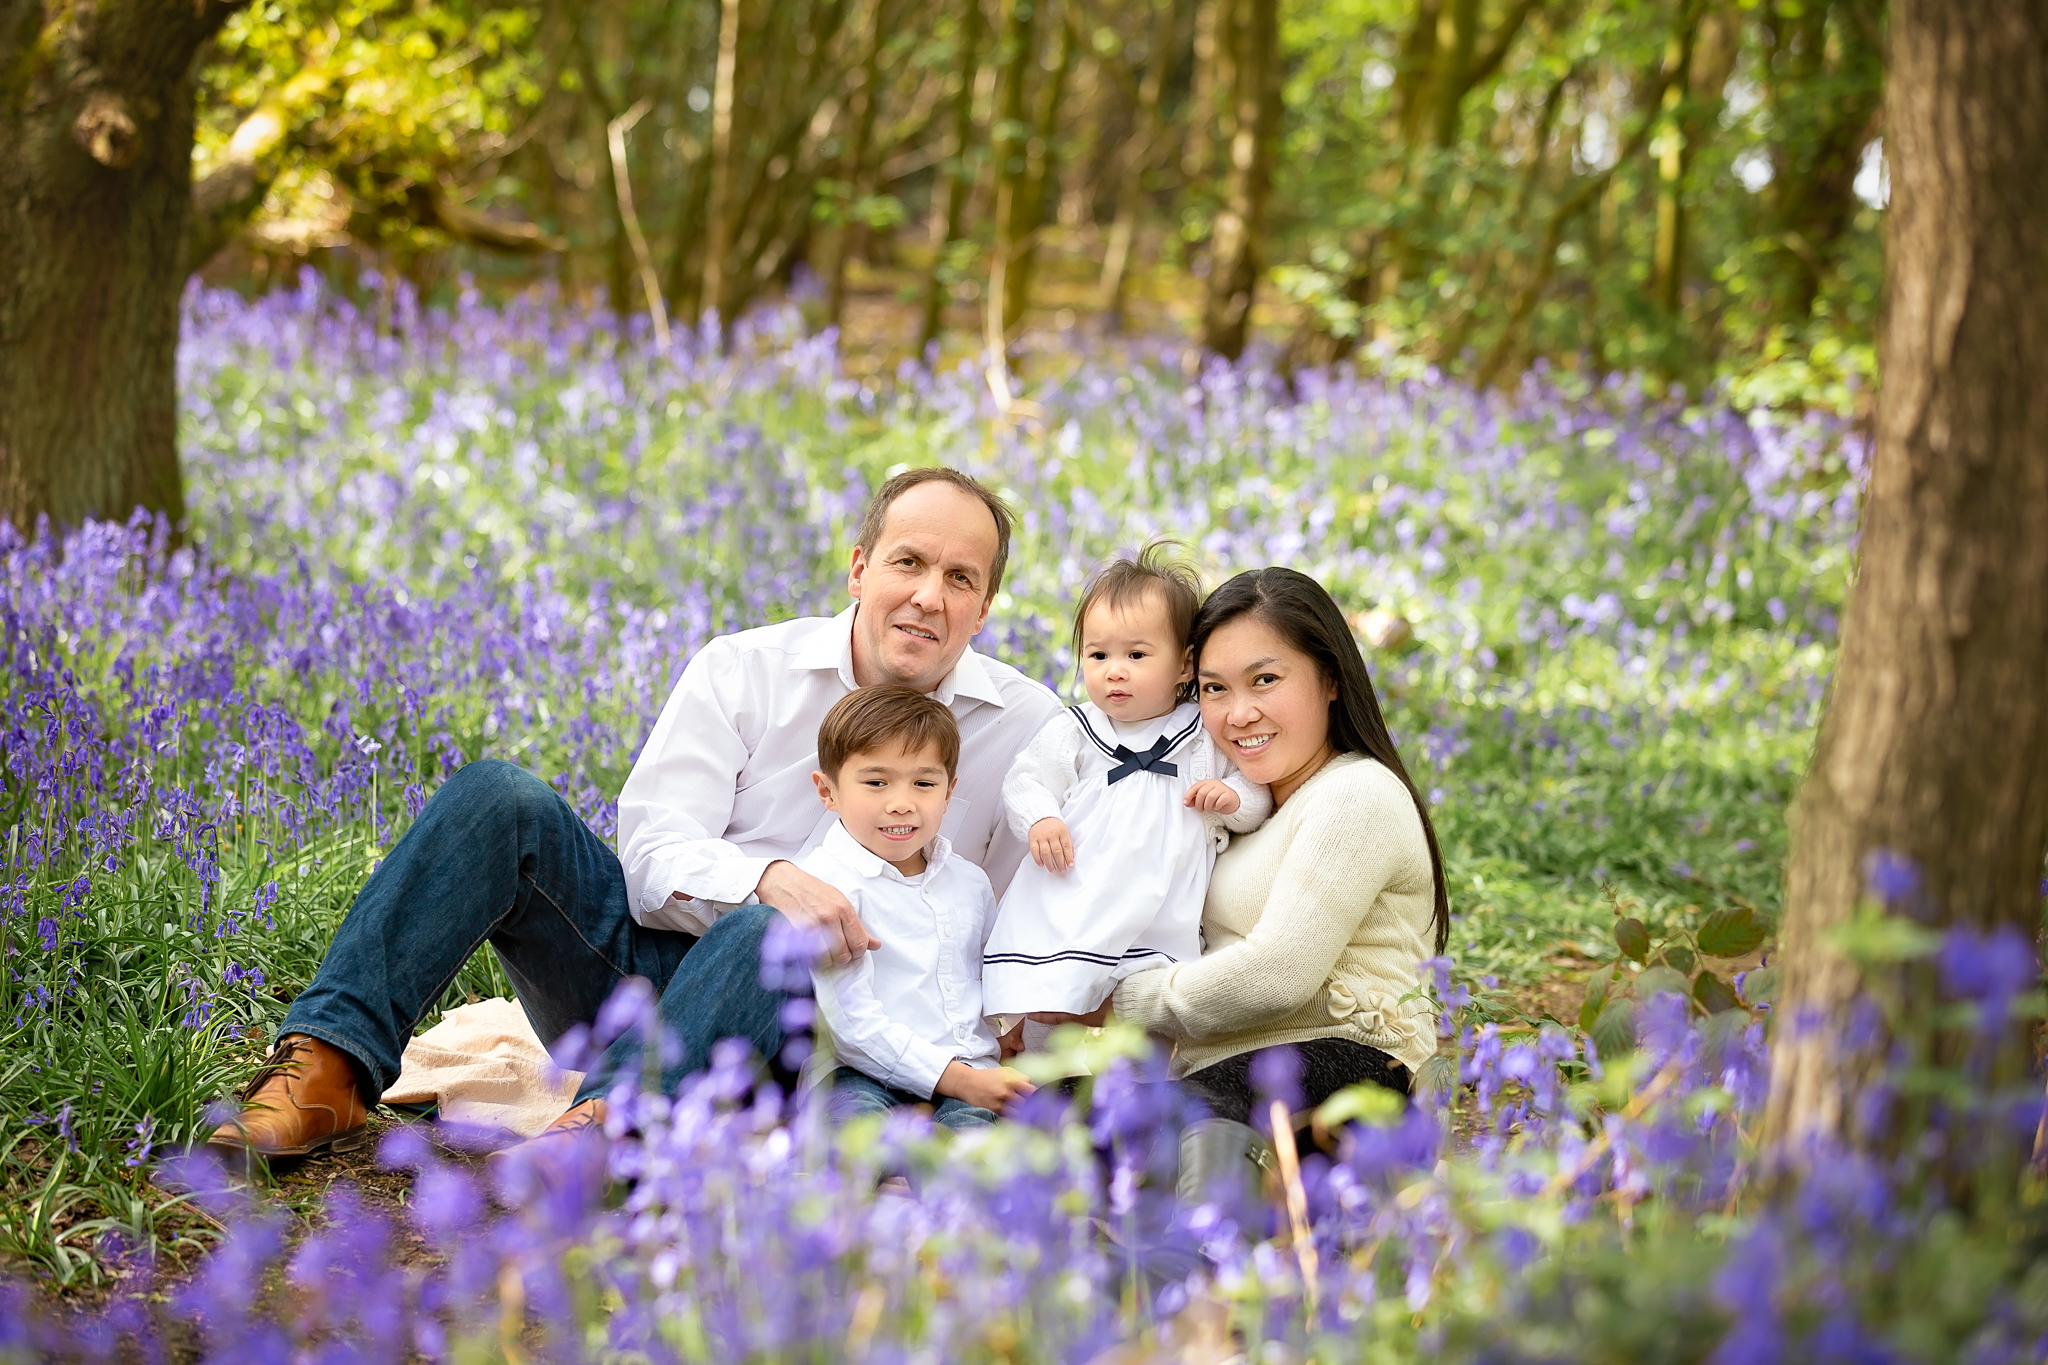 Family photography Leeds, York, Harrogare, Bradford: family of 4 posing for a family picture in a bluebell wood in Leeds, Yorkshire